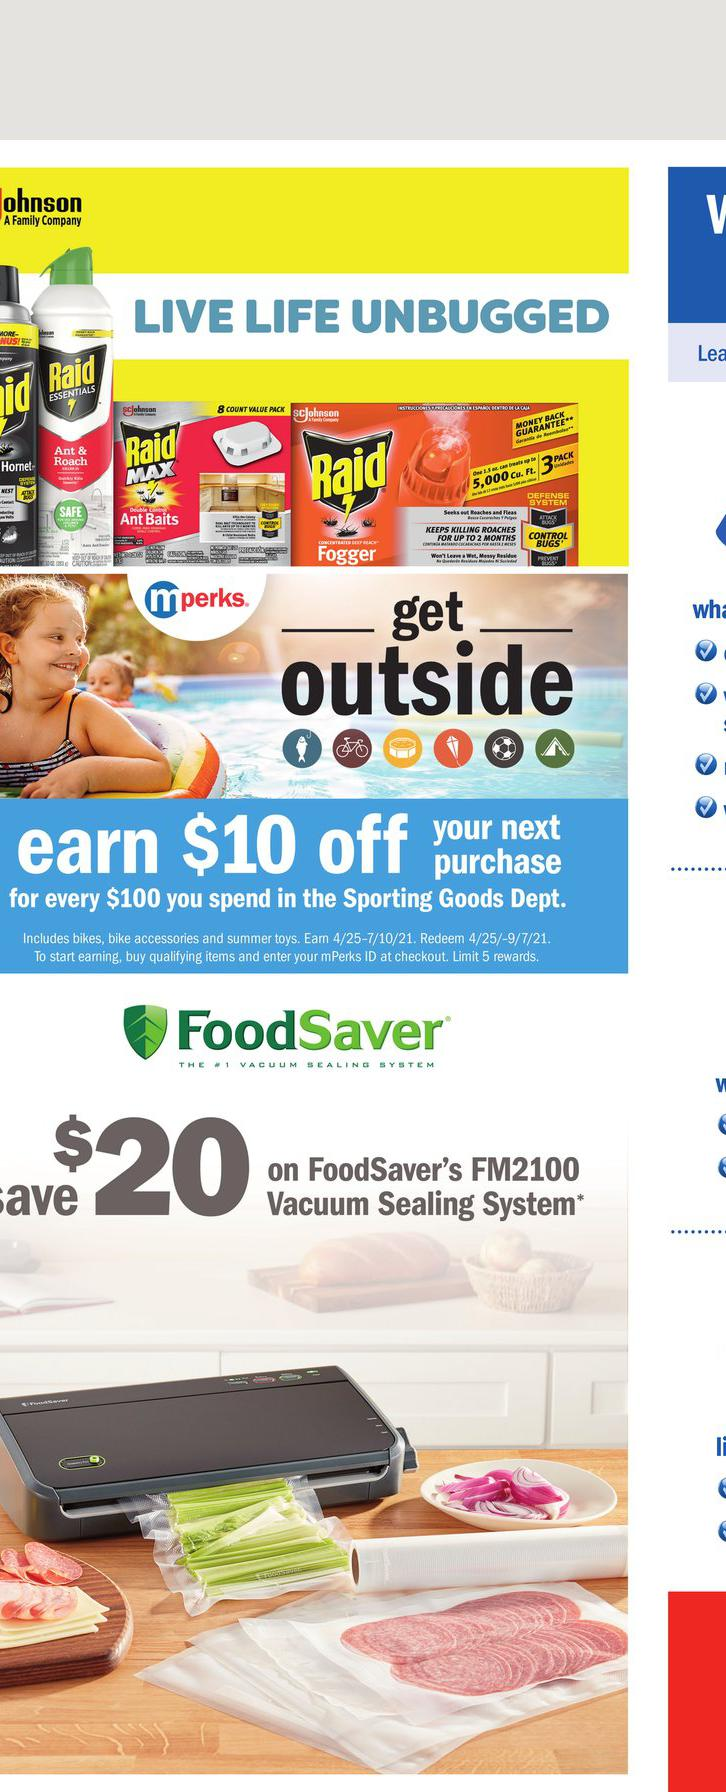 06.06.2021 Meijer ad 23. page